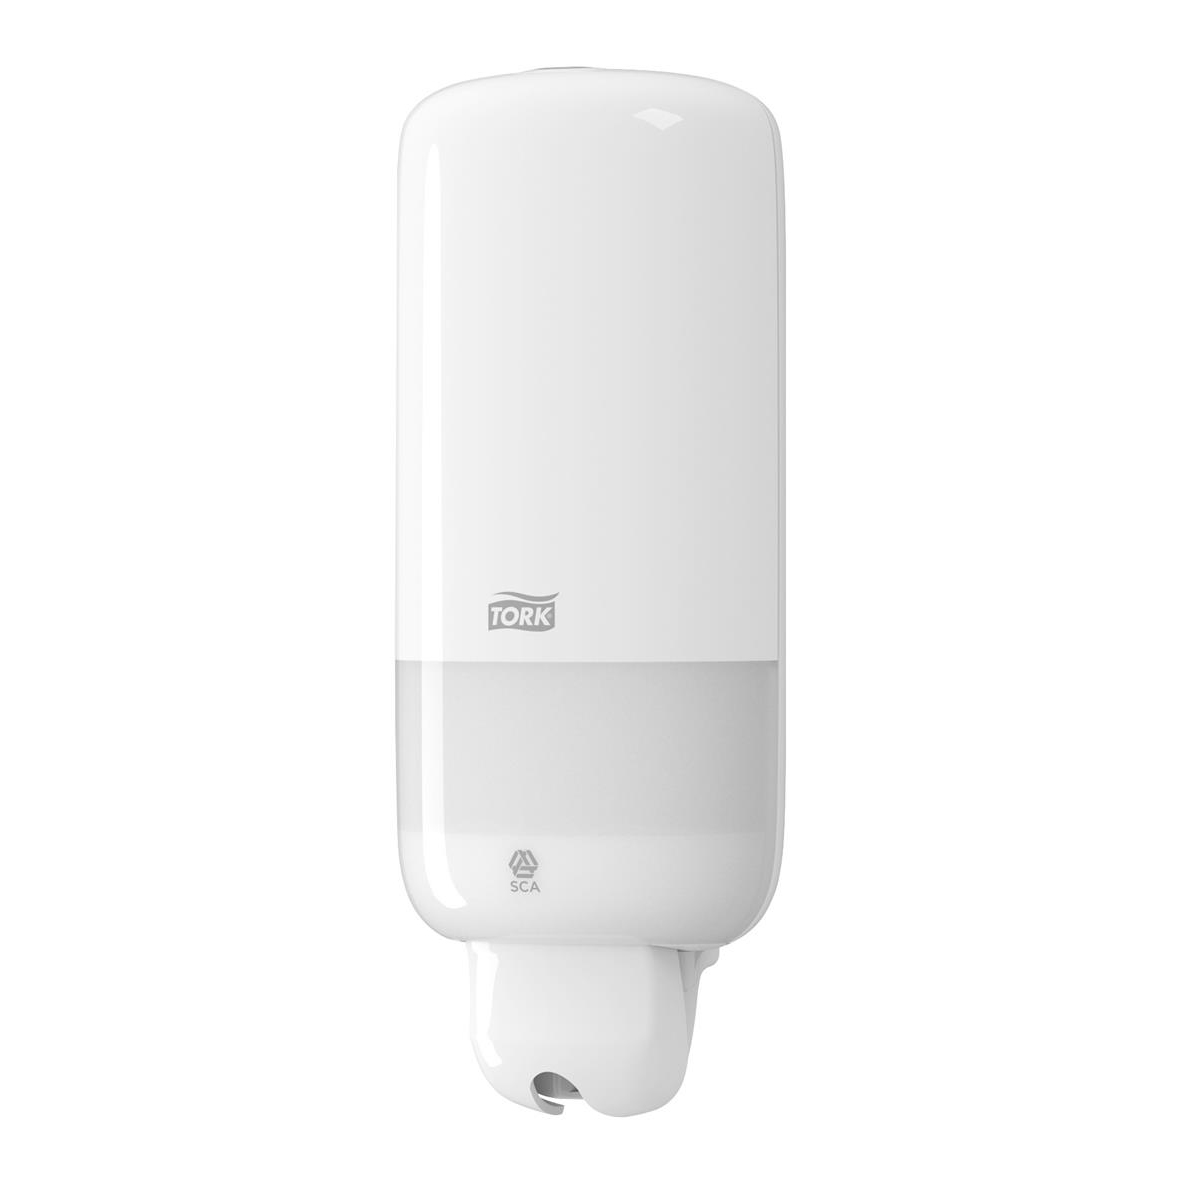 Institutional soap or lotion dispensers Tork Foam Soap Dispenser for 1000ml refills Casing White Ref 561500